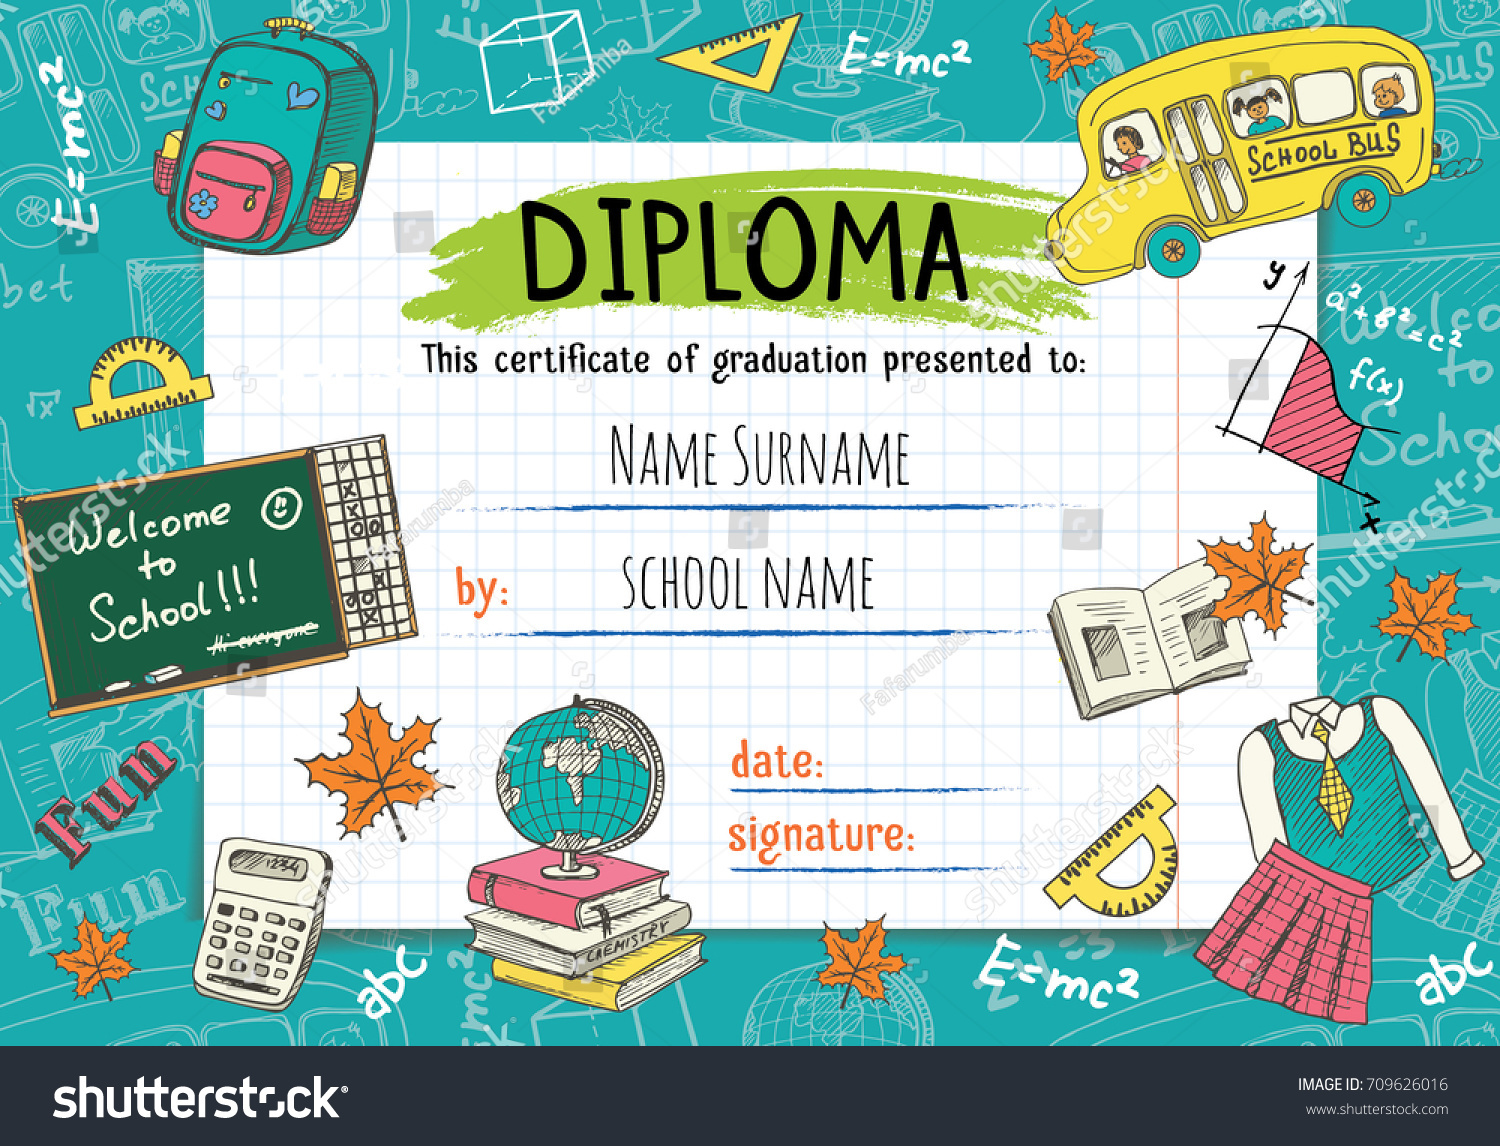 Diploma template kids certificate background hand stock vector diploma template for kids certificate background with hand drawn school elements for kindergarten school xflitez Images